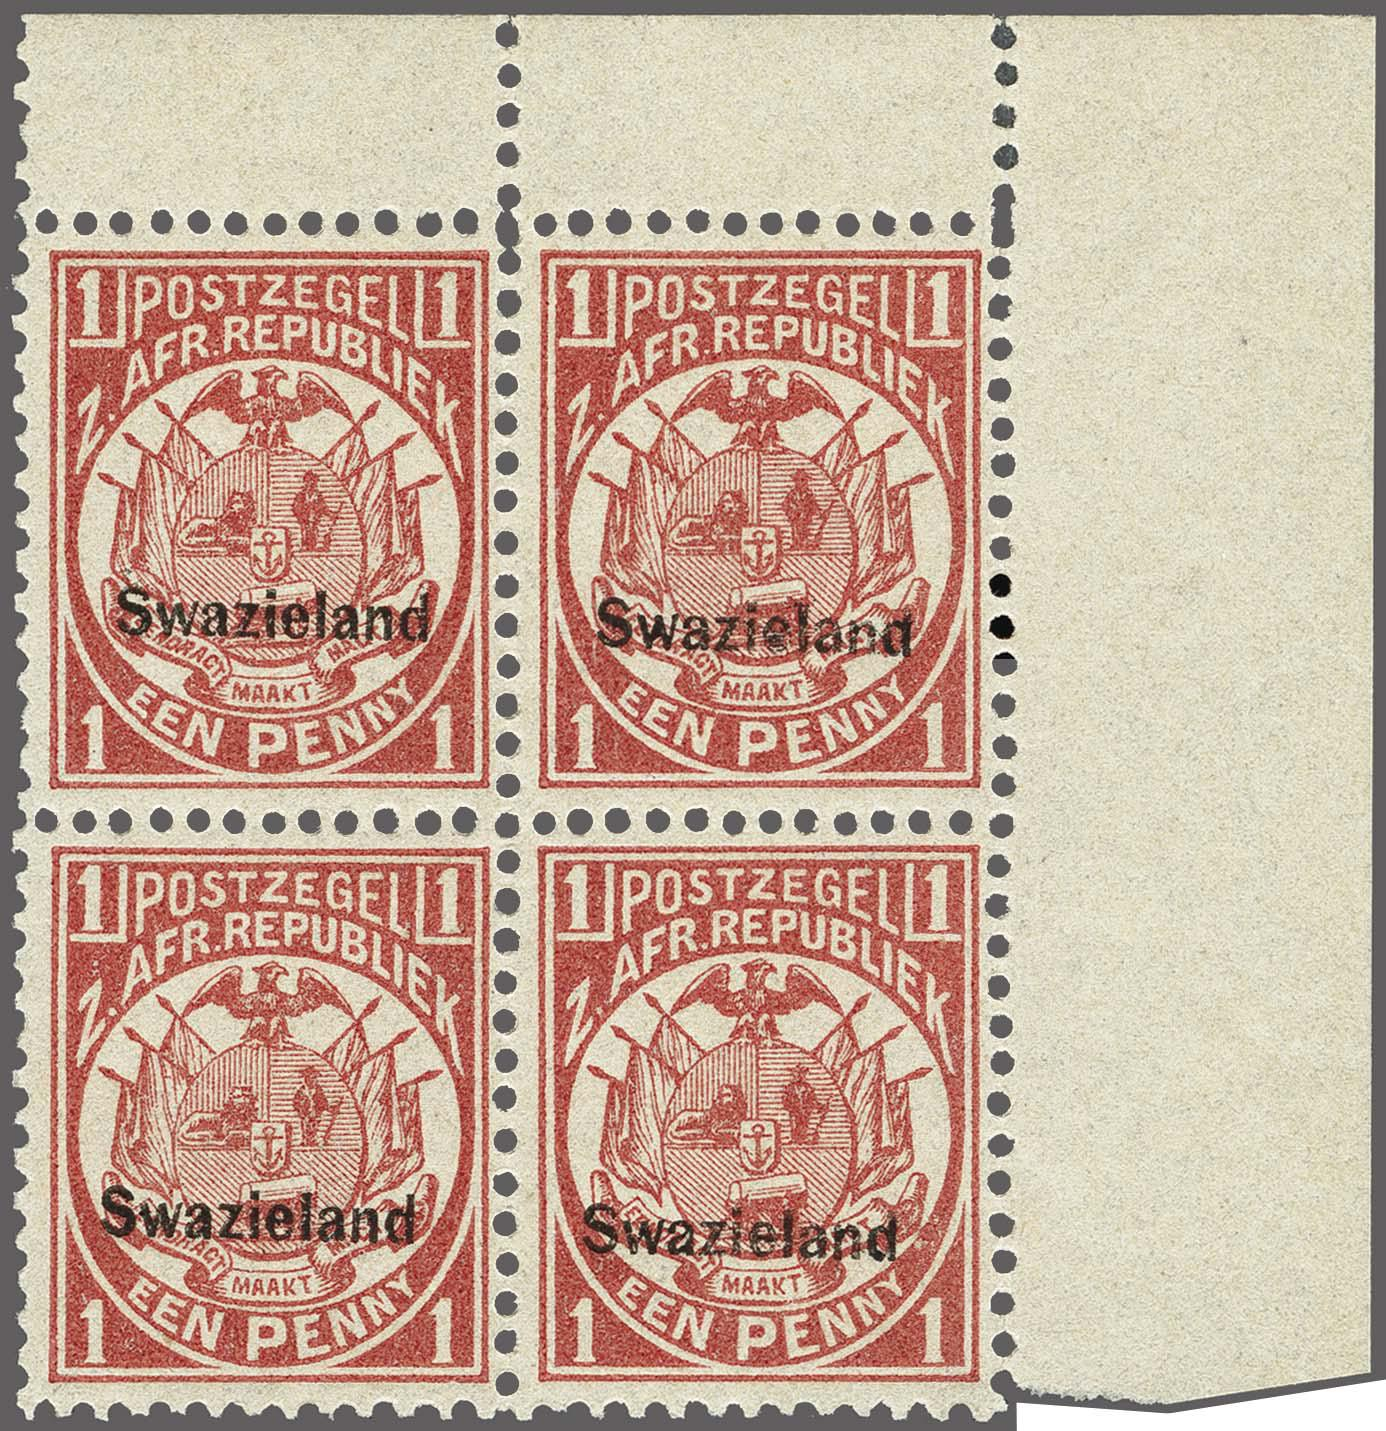 Lot 147 - Great Britain and former colonies swaziland -  Corinphila Veilingen Auction 250-253 - Day 1 - Foreign countries